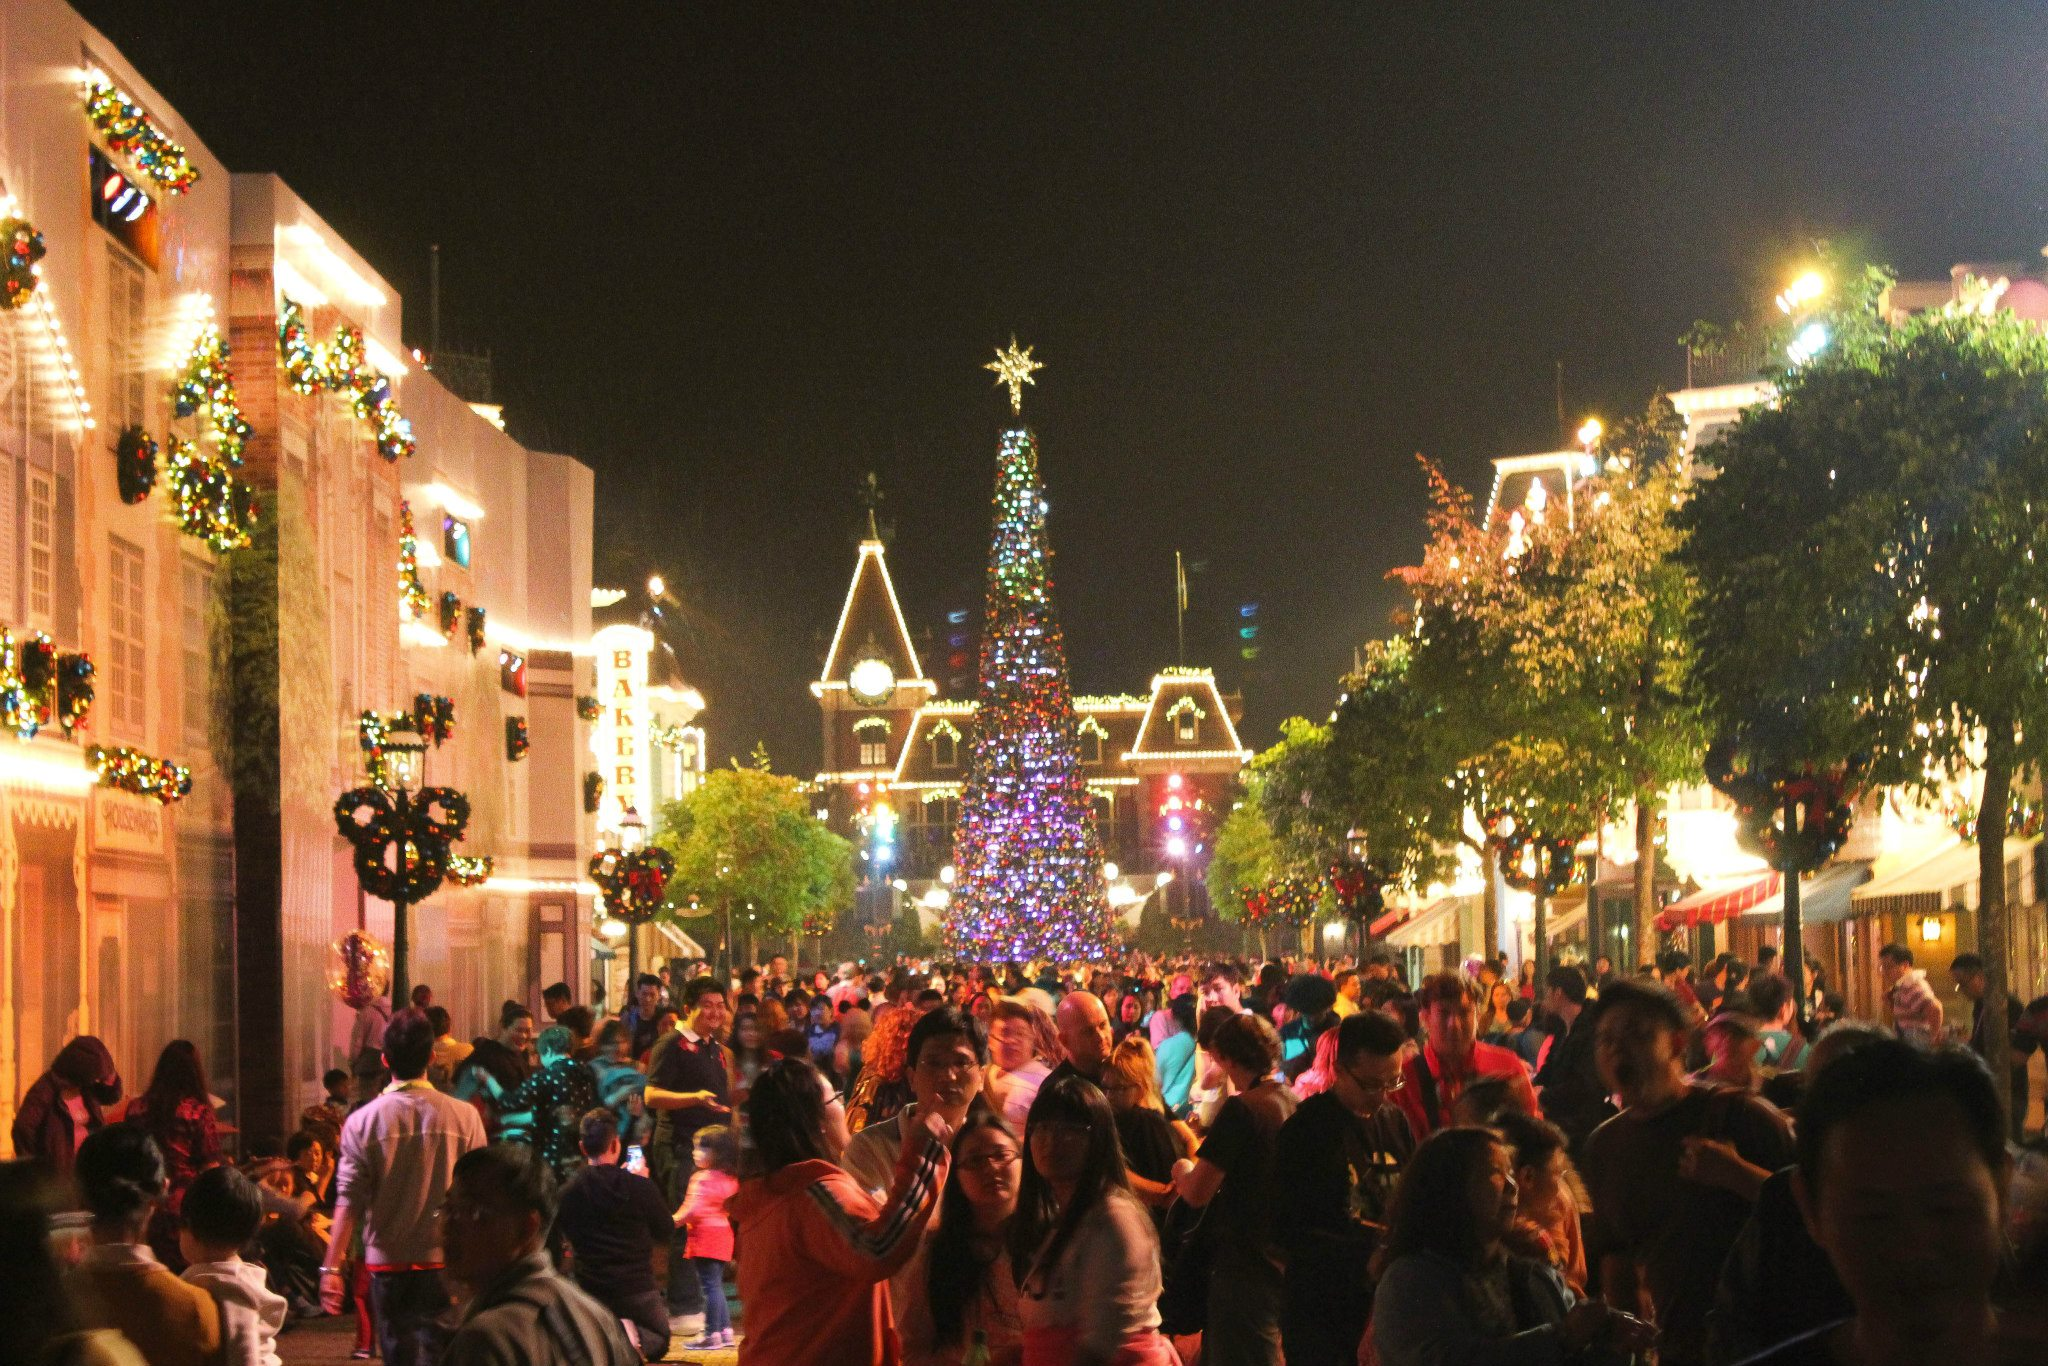 hongkong disneyland at night